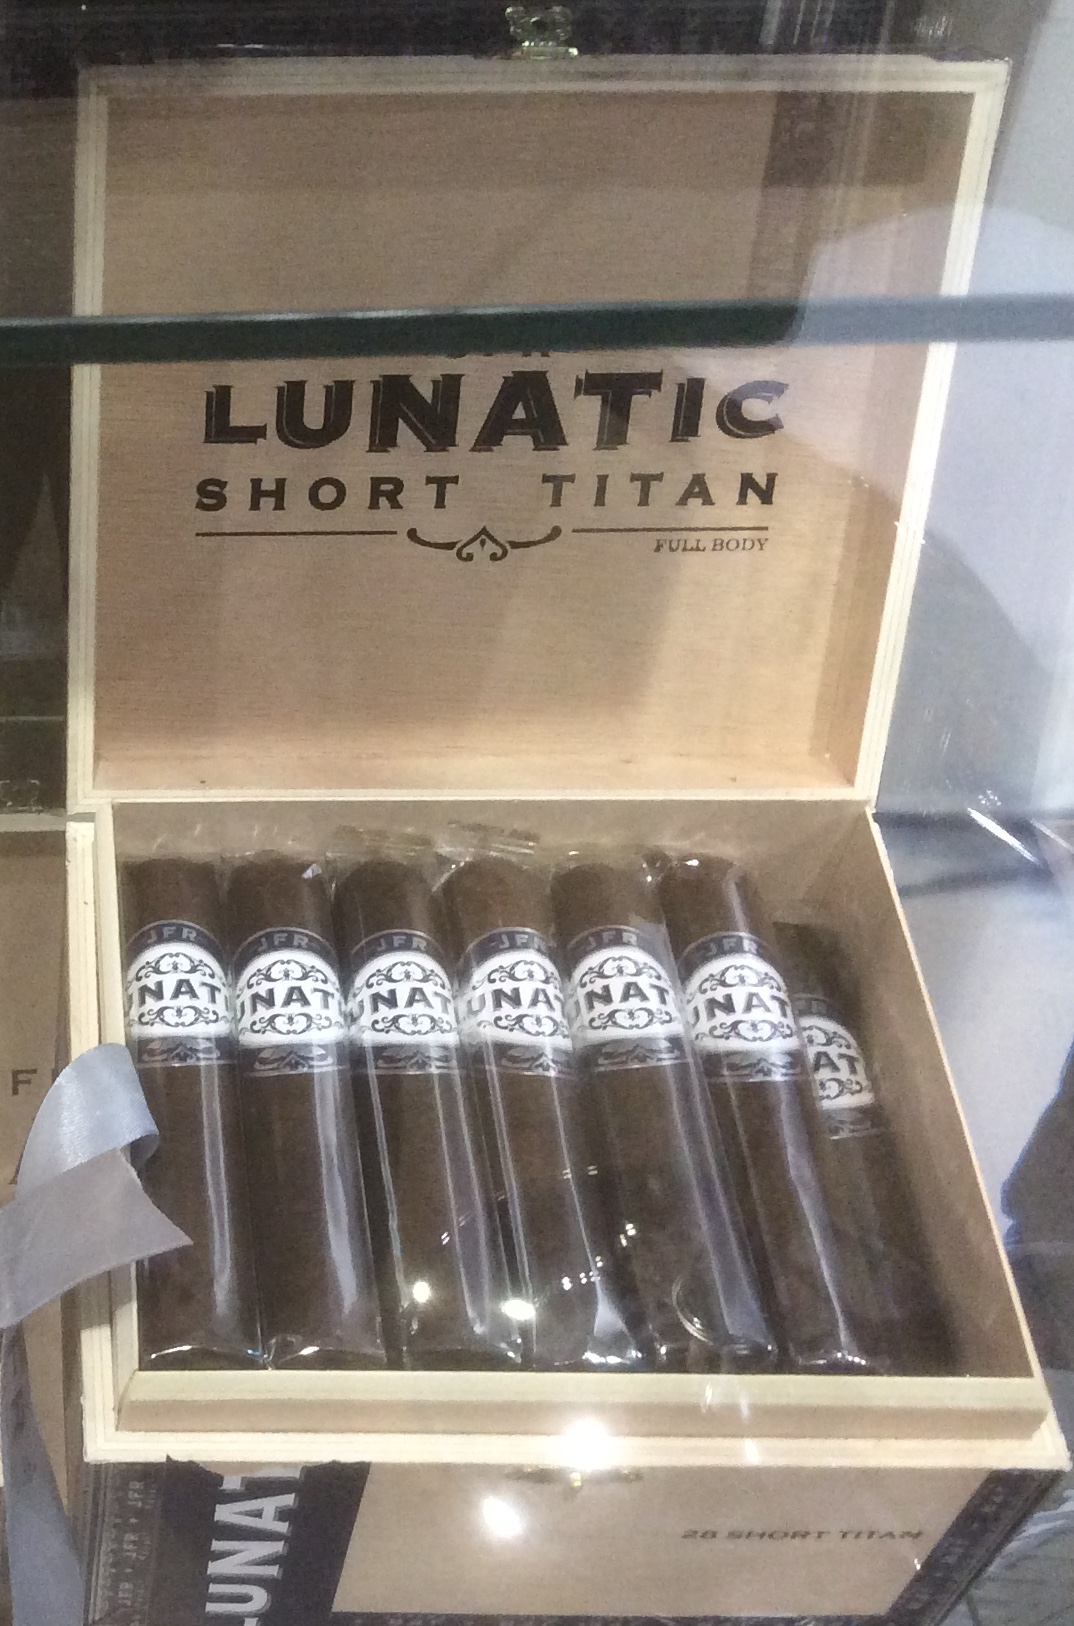 Cigar News: Casa Fernandez Launches JFR Lunatic Maduro Short Robusto and Short Titan at 2016 IPCPR